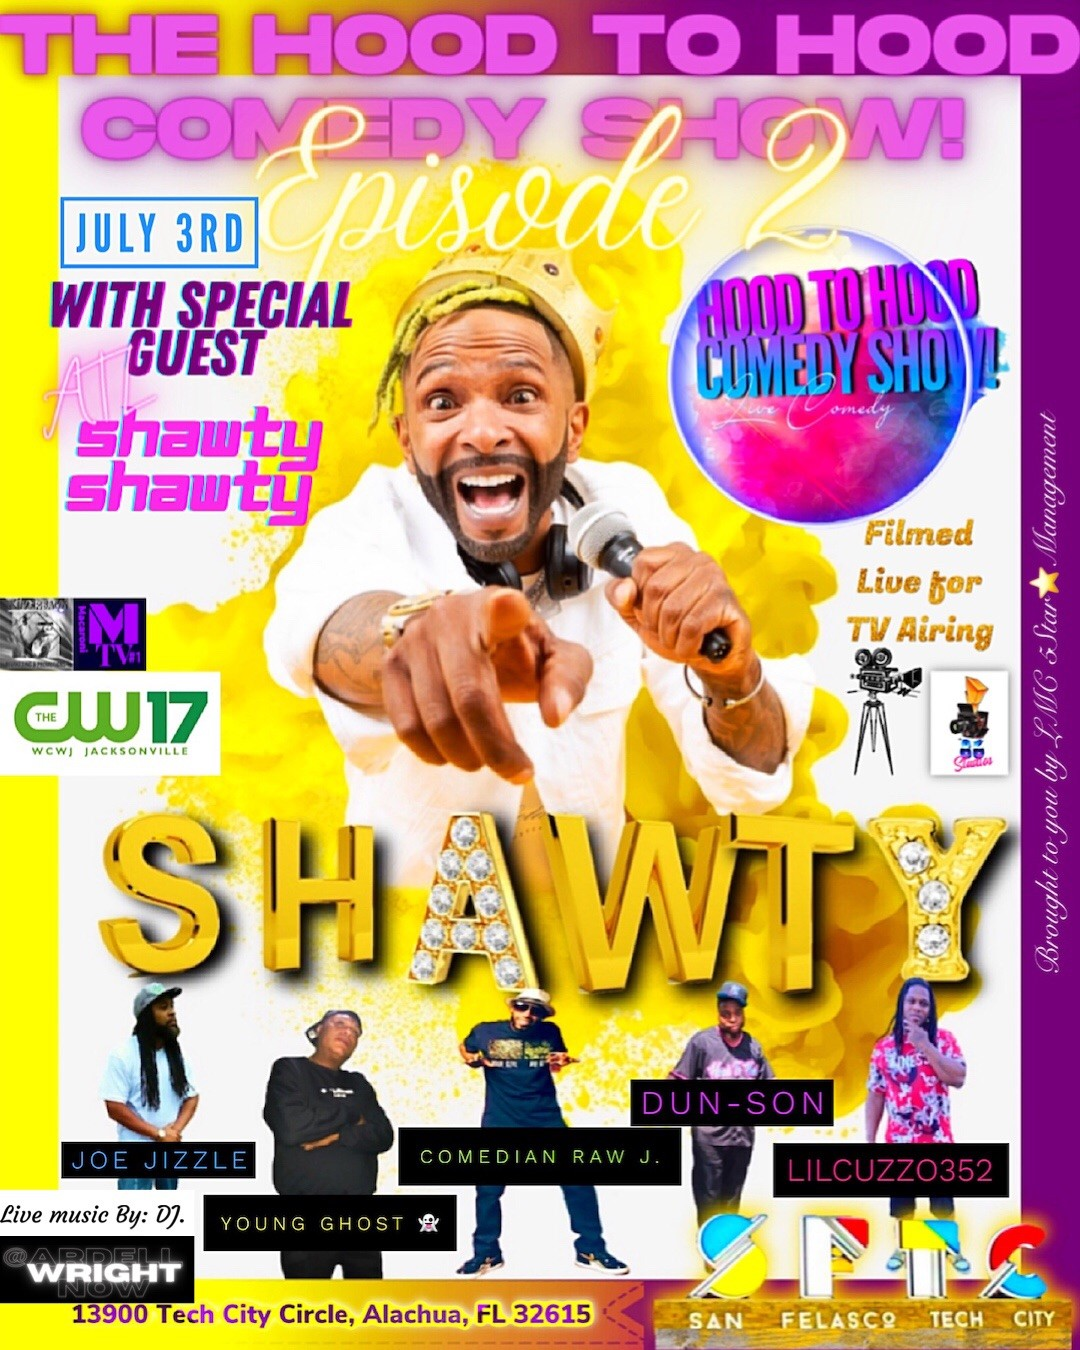 The Hood To Hood Comedy Show Episode 2 on Jul 03, 20:00@San Felasco Tech City - Pick a seat, Buy tickets and Get information on LMC 5Star Management LLC.